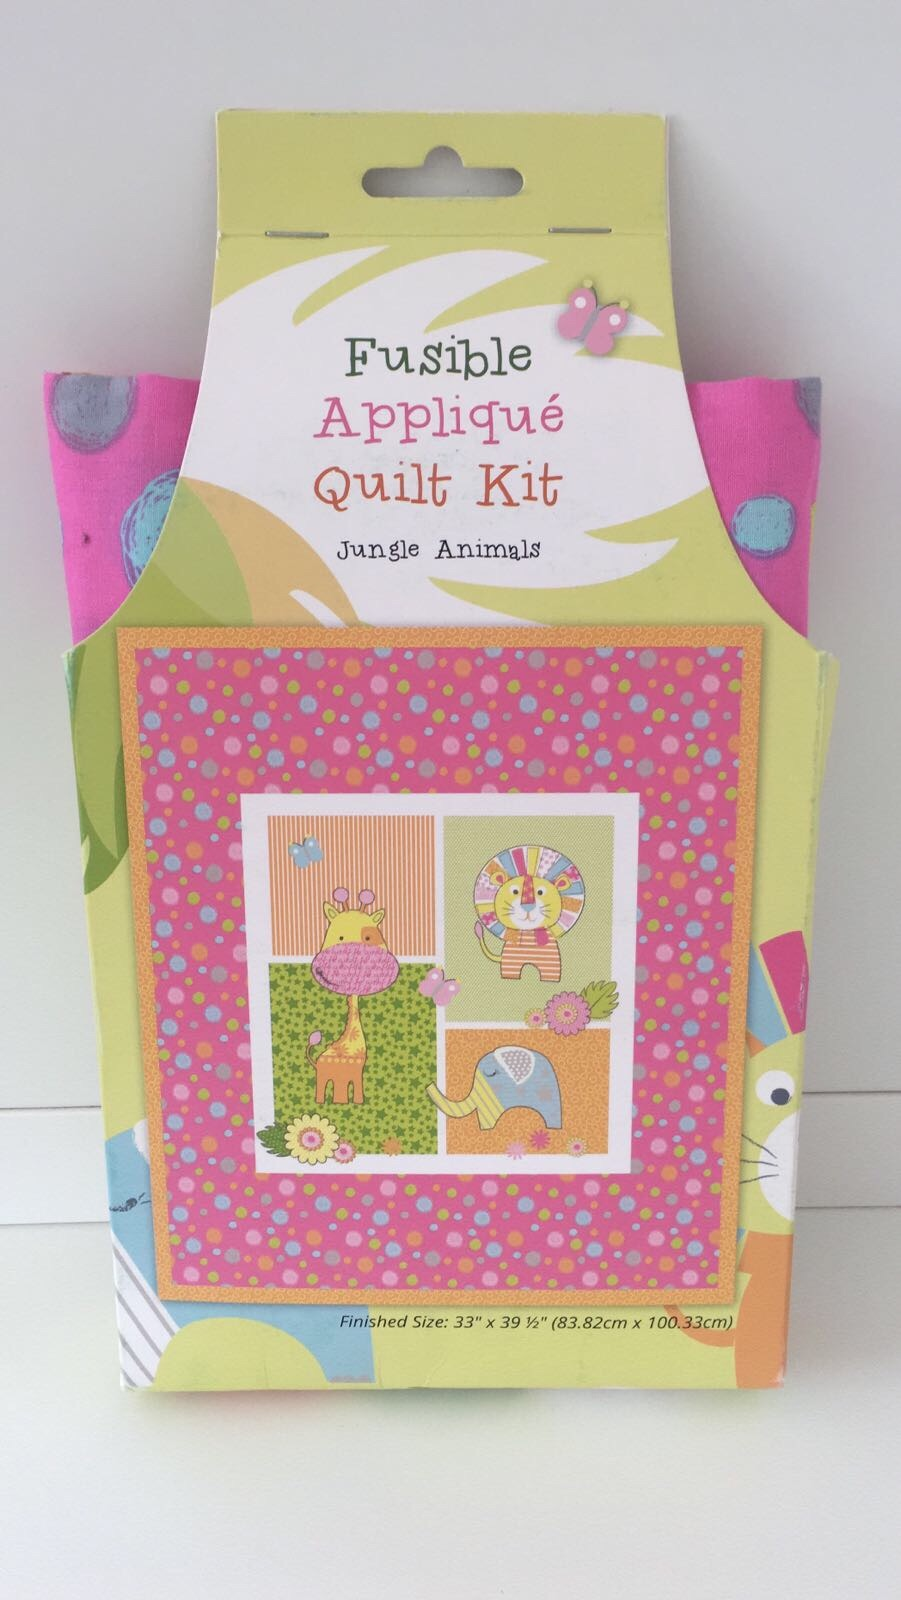 Jungle Animals Quilt Kit